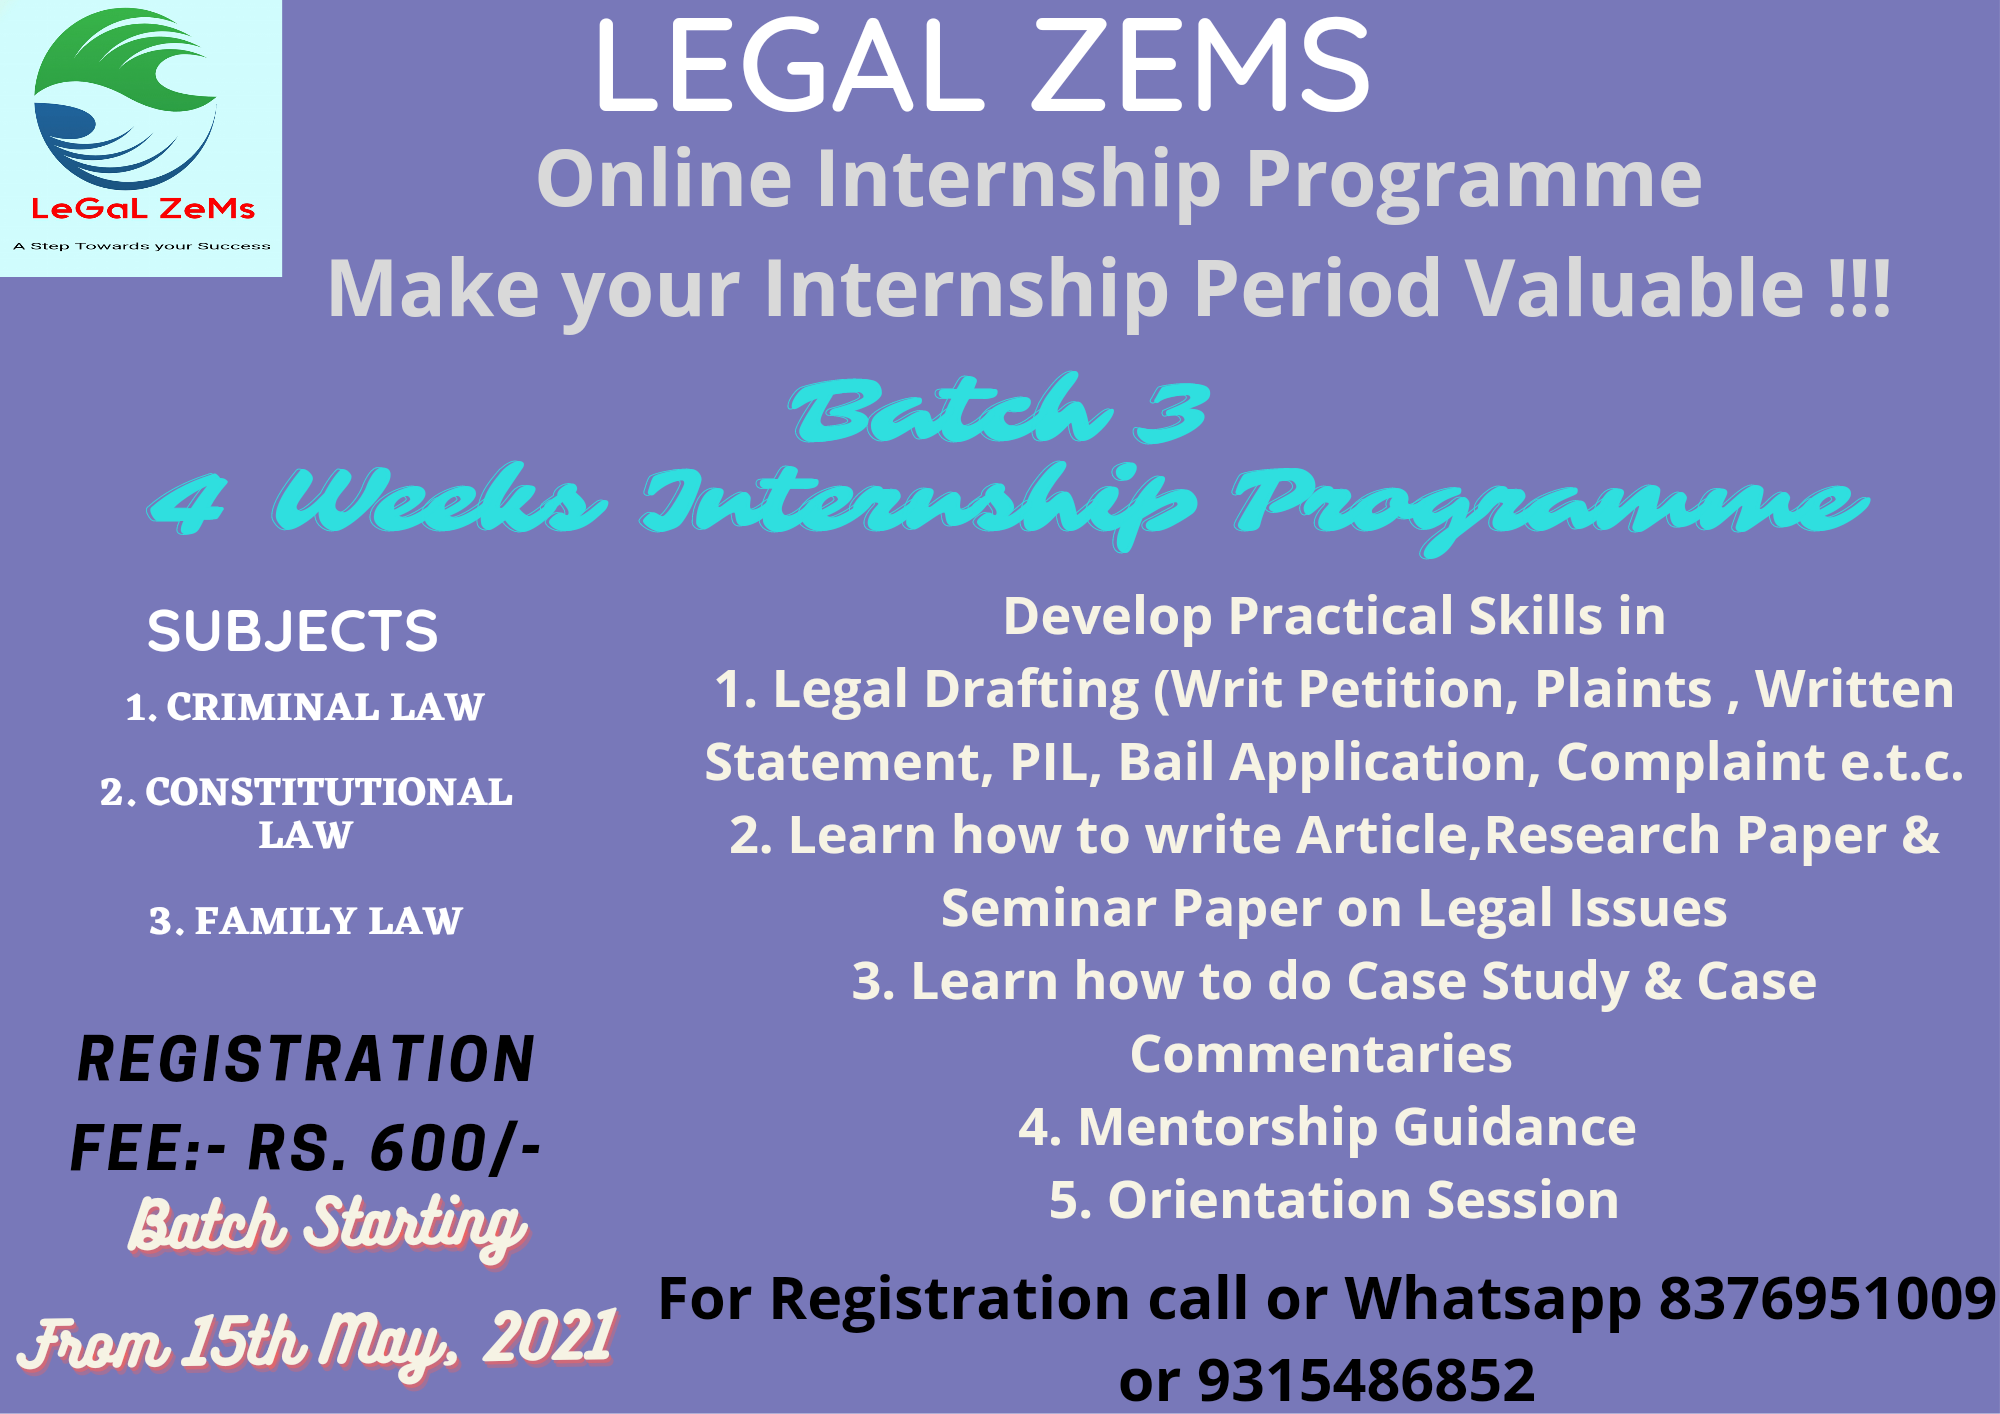 Legal Zems Online Internship Programme 2021 [15th May to 15th June 2021]